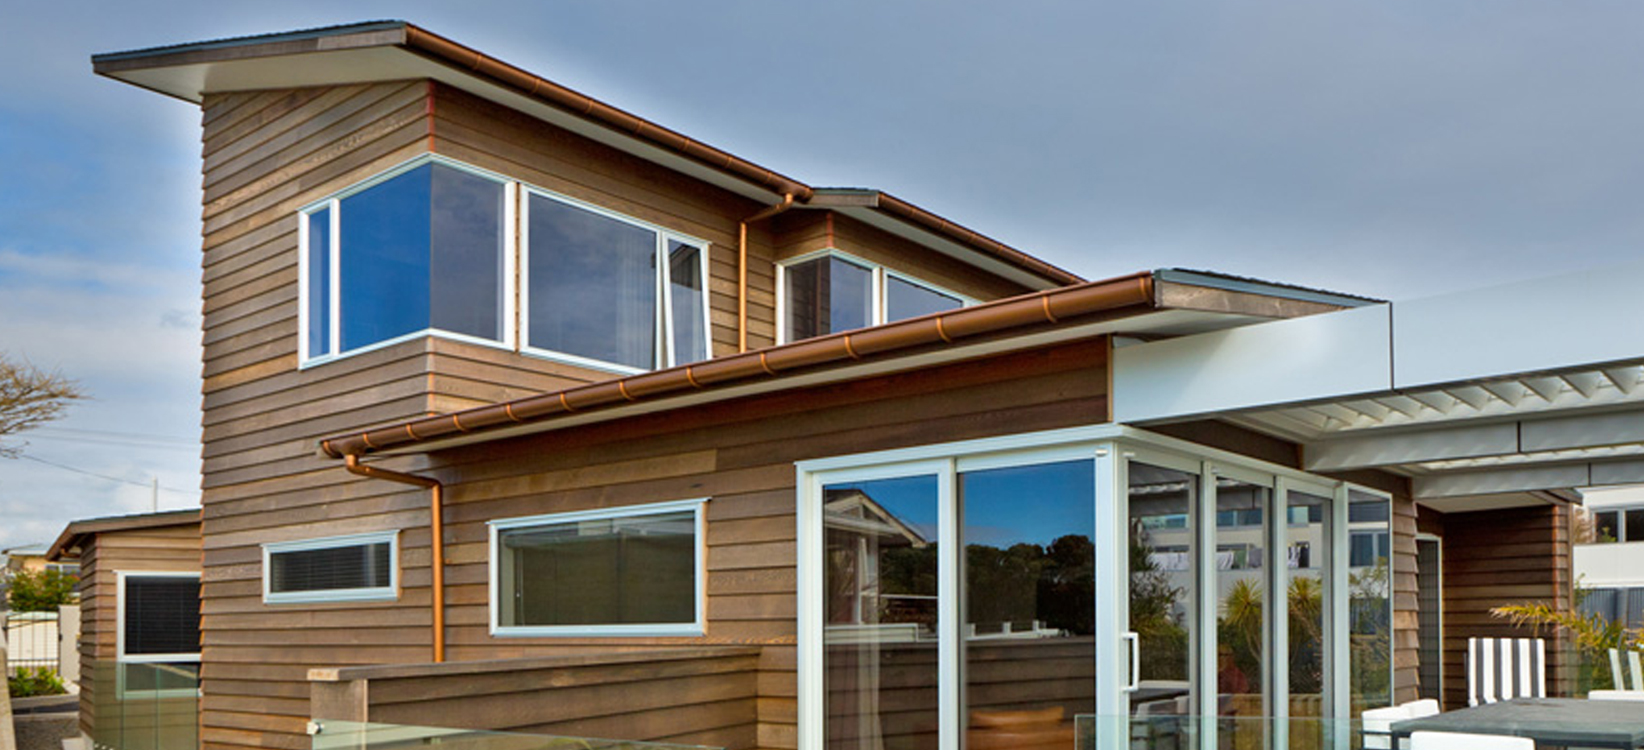 Cedar cladding home with Marley Typhoon copper spouting and RP80 downpipes